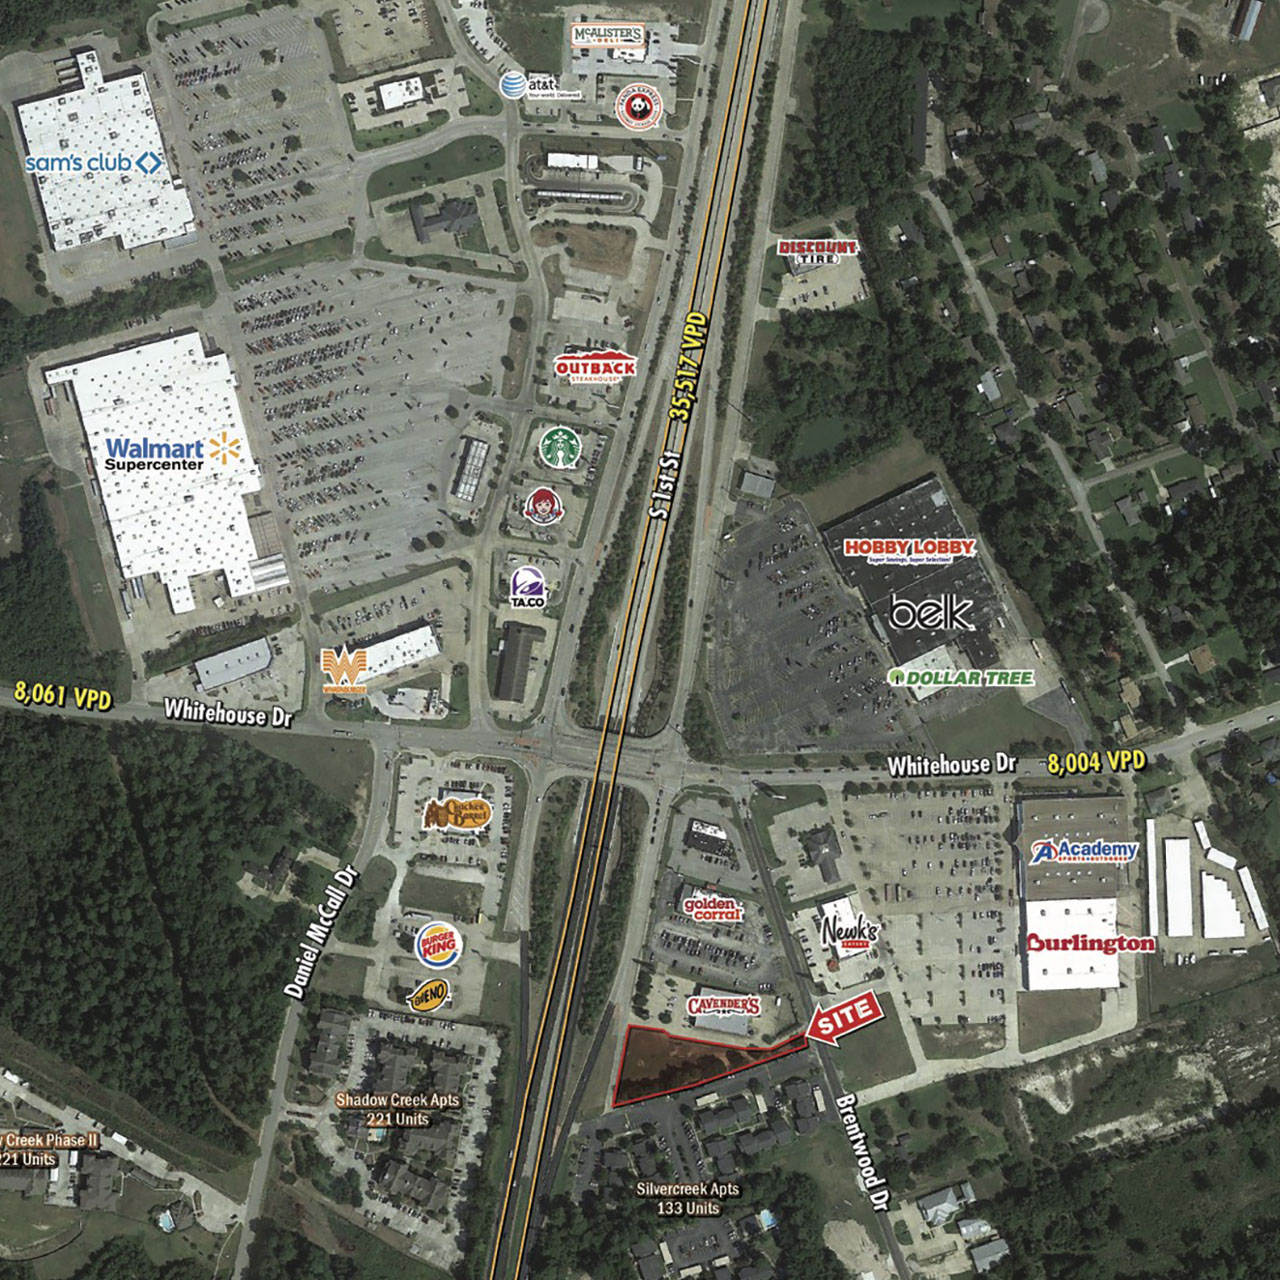 Land For Sale | Approximately 35,000 SF Next to Cavender's featured image